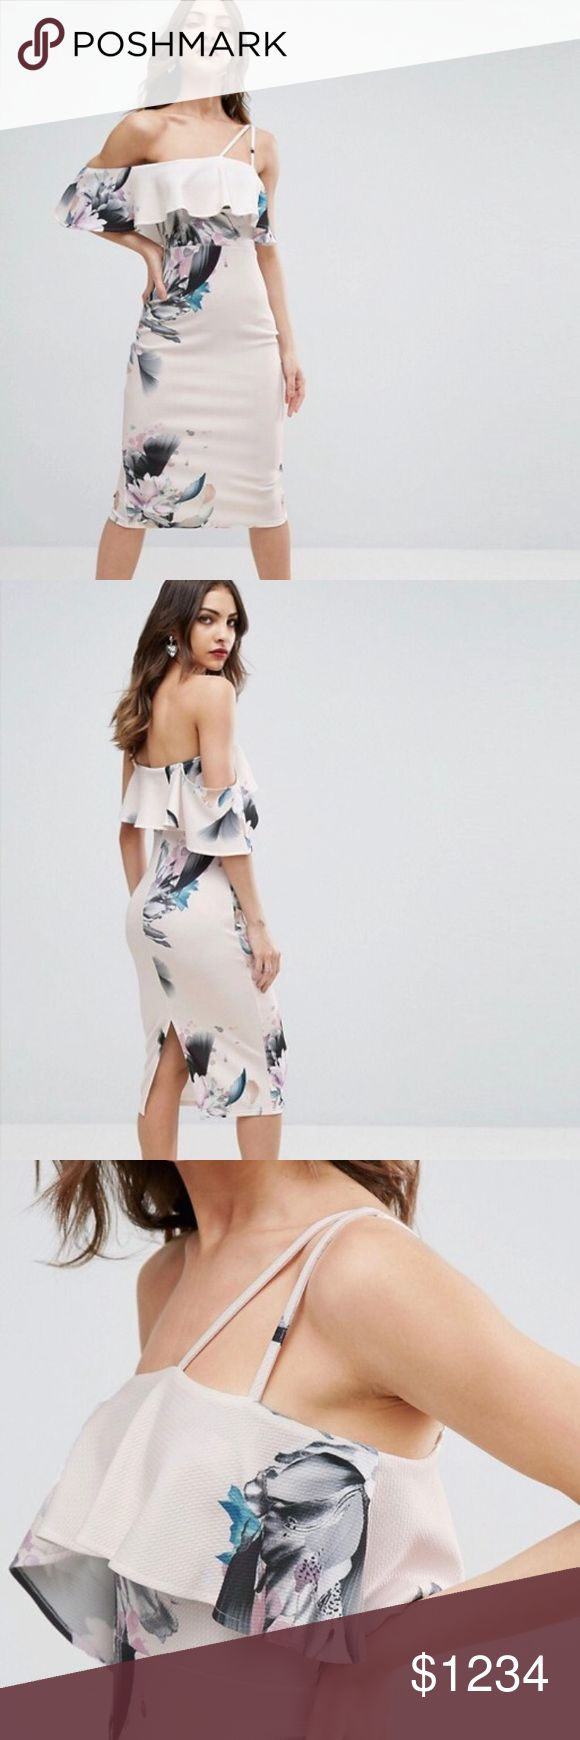 ISO Floral Ruffle Off Shoulder Double Strap Dress ATTENTION PLEASE: This listing is not for sale. I am in search for this dress! It is an ASOS original. Must be a size 4. Please comment below if you are selling this or please tag a seller you know who is. Thank you 😊 Asos Dresses Midi